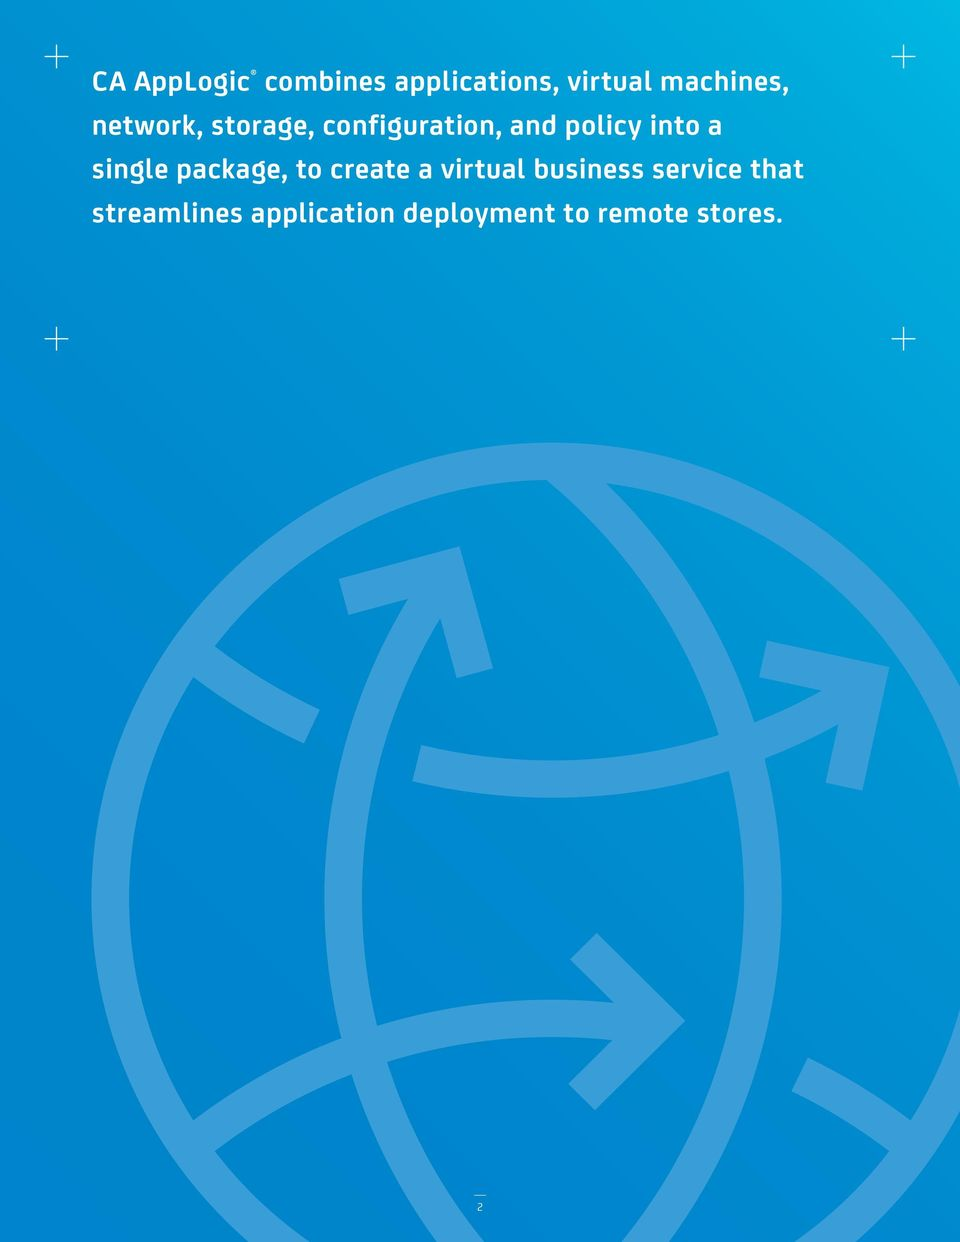 single package, to create a virtual business service